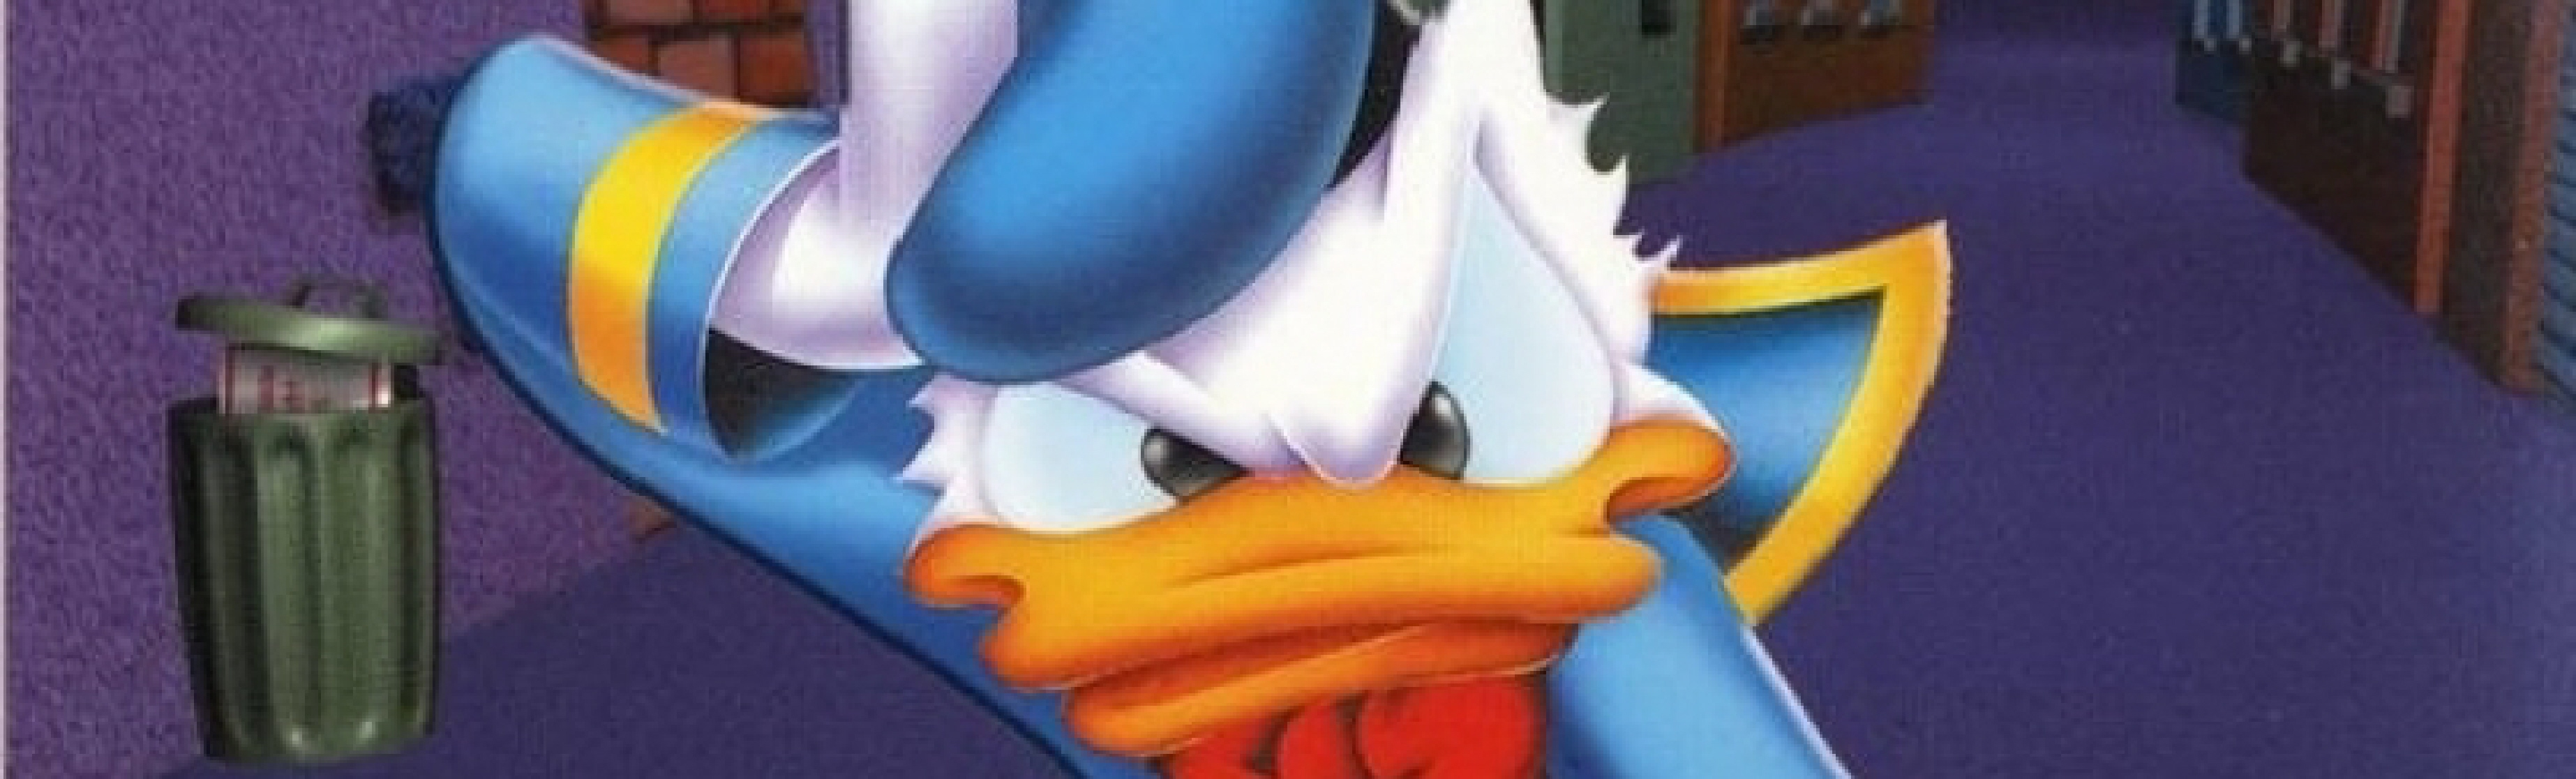 Donald duck sad face - photo#17